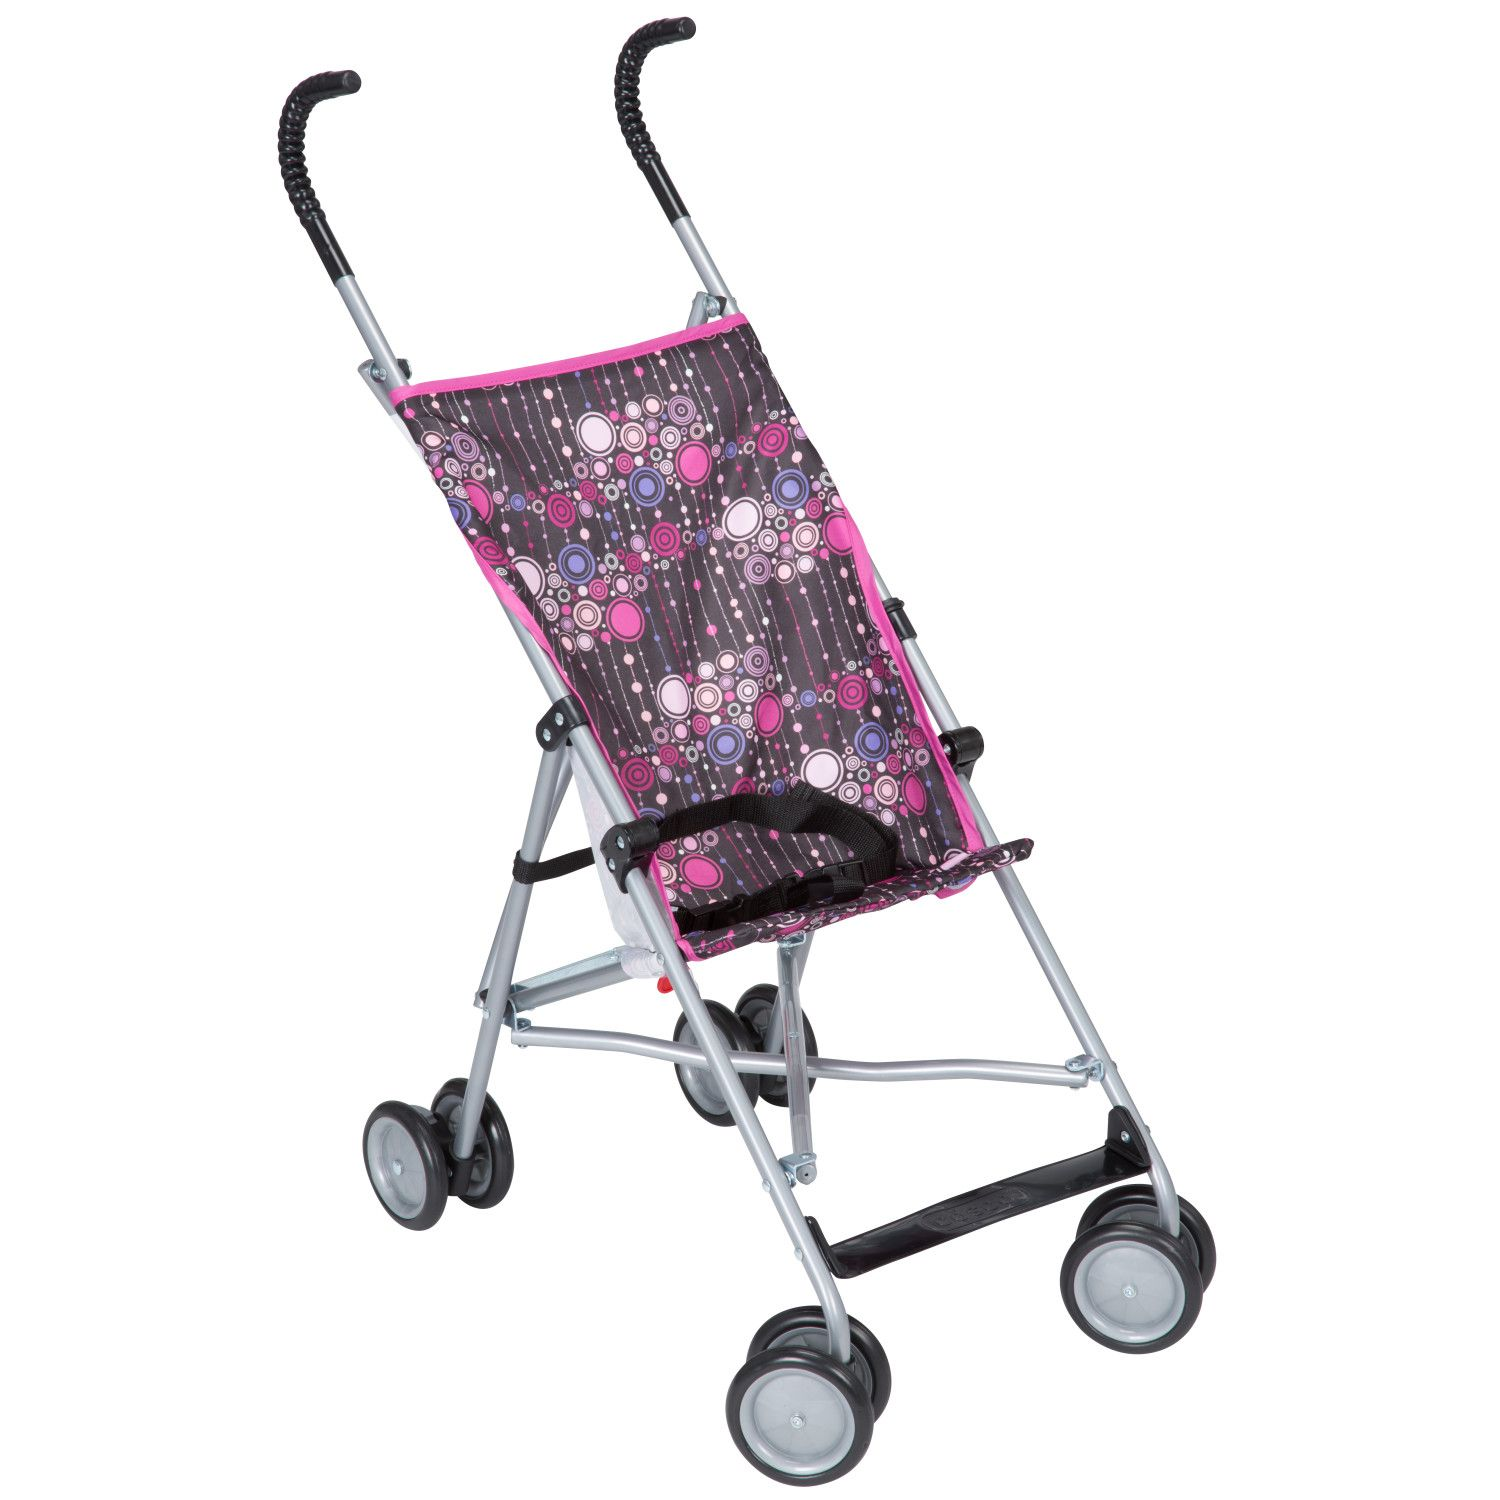 157 reference of cosco umbrella stroller pink in 2020